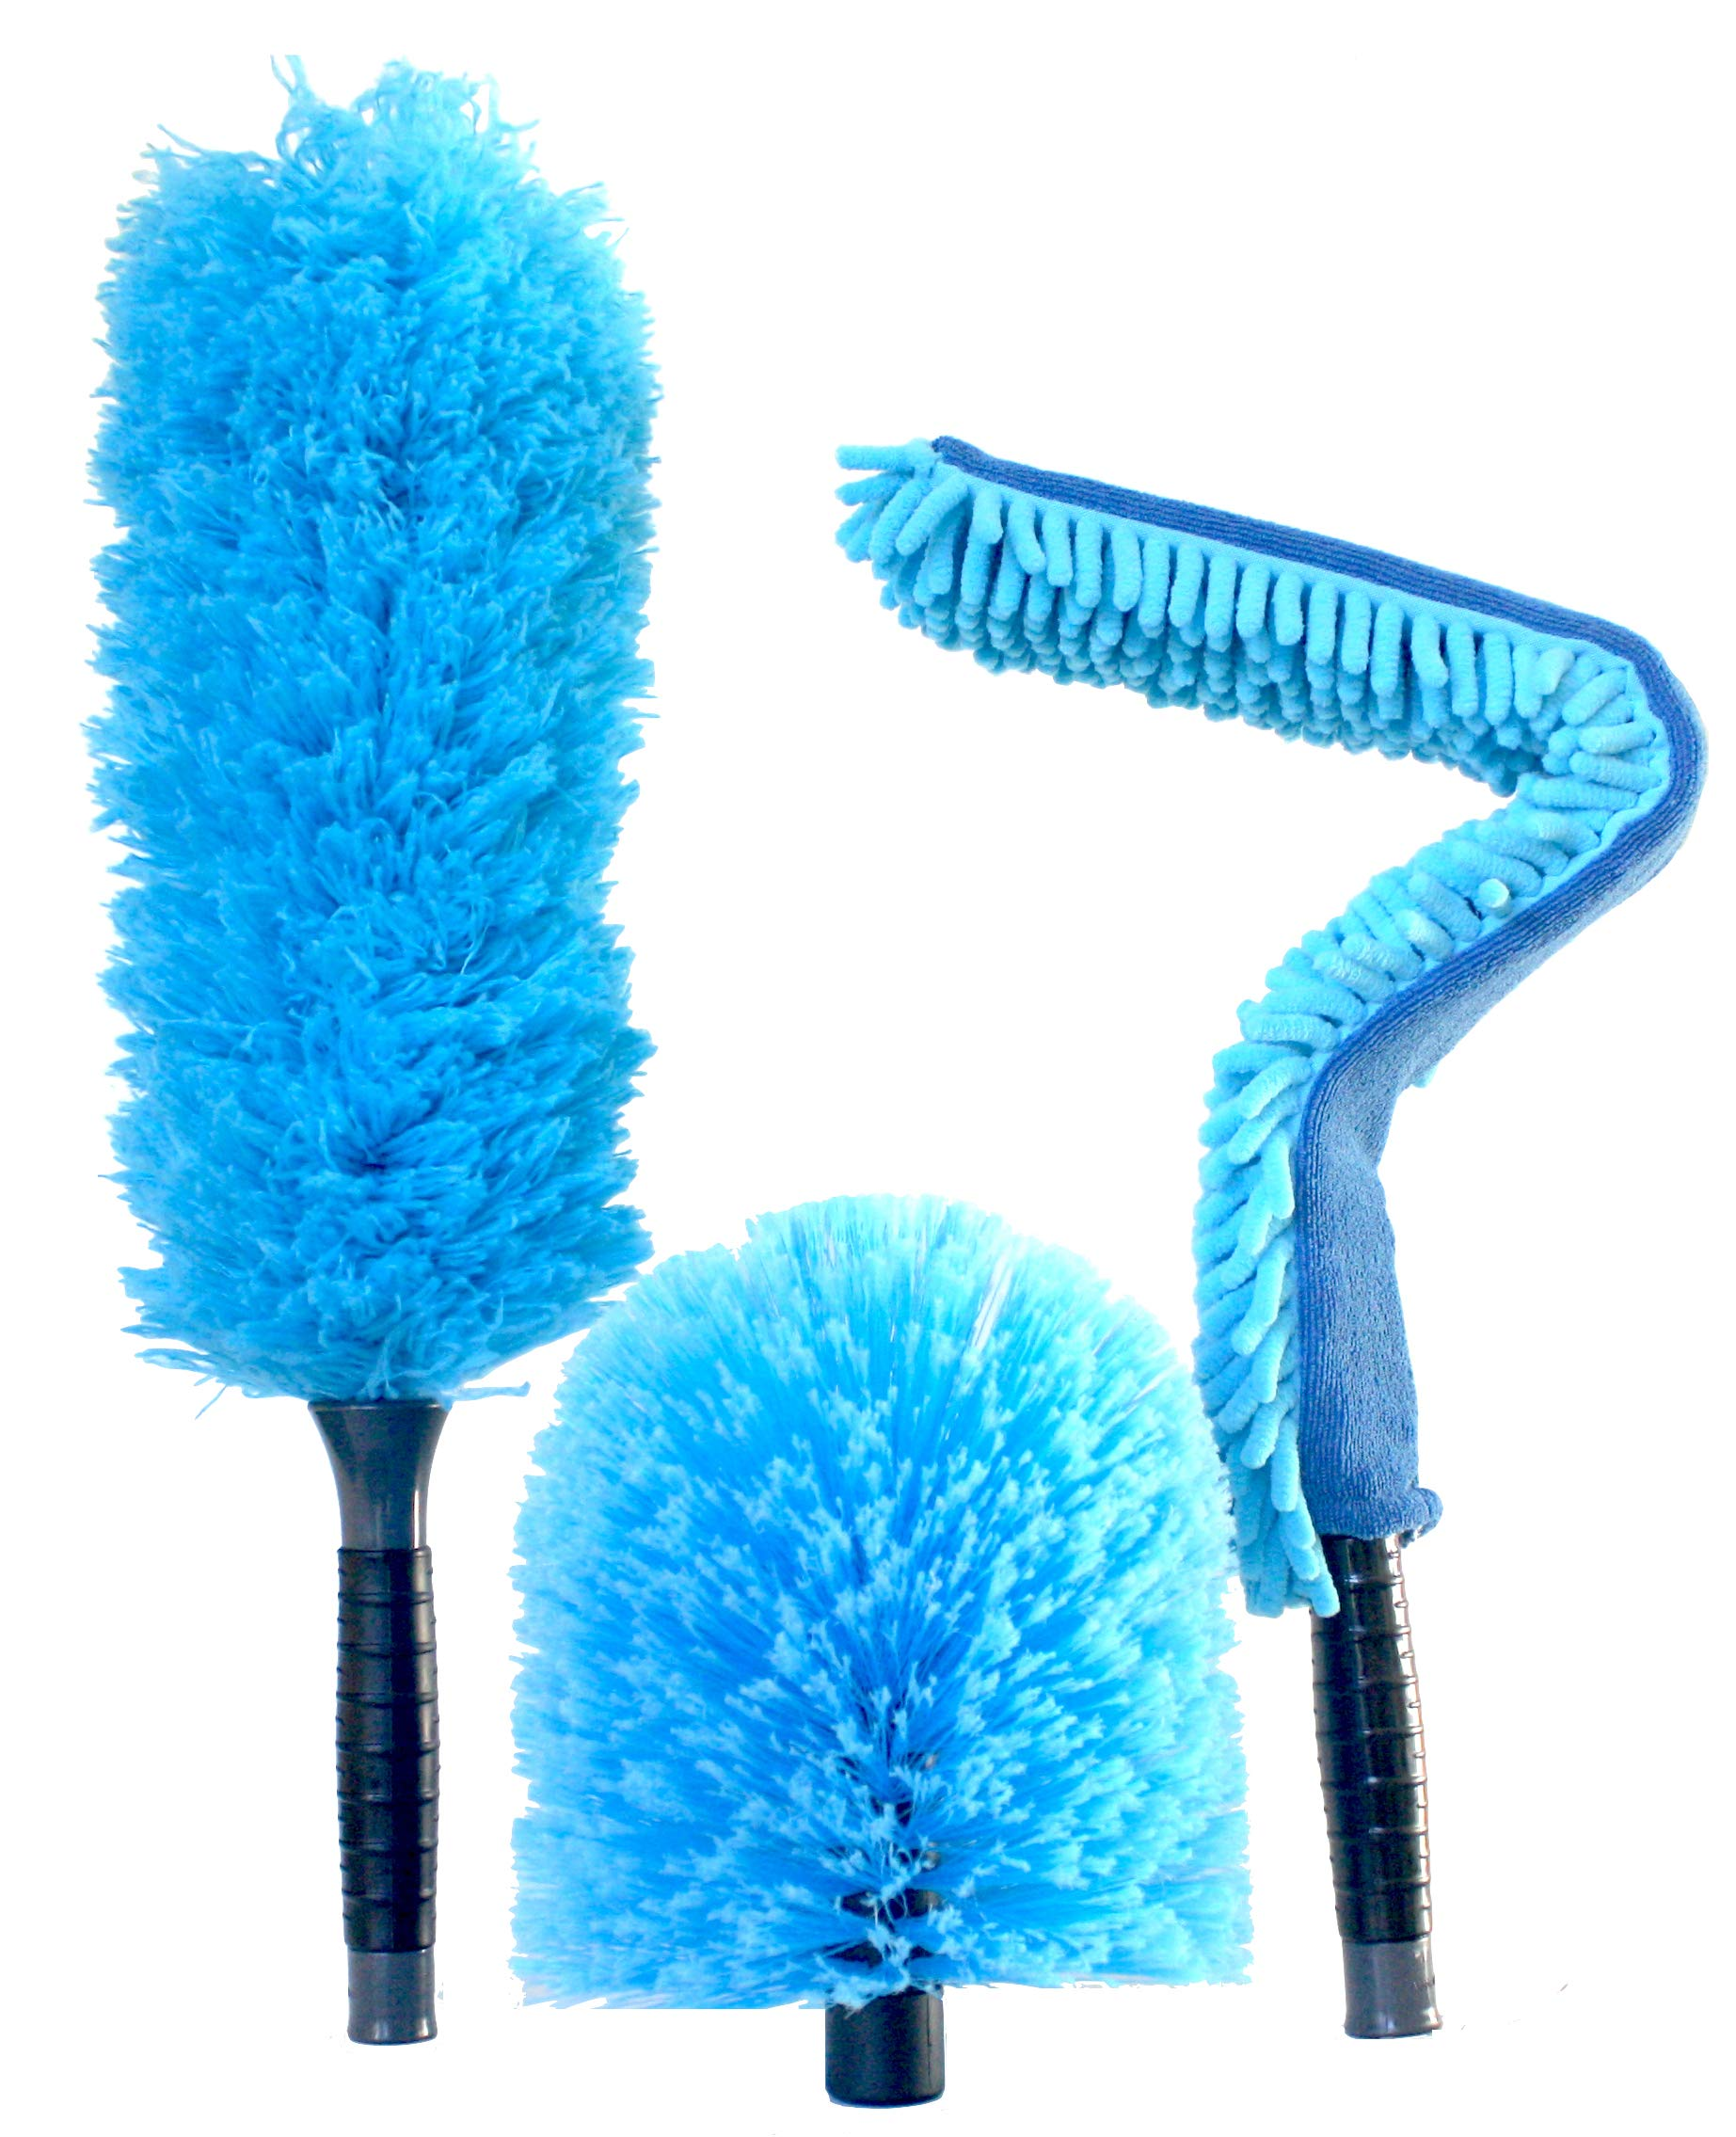 EVERSPROUT Duster 3-Pack | Hand-Packaged Cobweb Duster, Microfiber Feather Duster, Flexible Ceiling Fan Duster | Twists onto Standard 3/4 inch Acme Threaded Poles (no Pole) (Soft Bristles) by EVERSPROUT